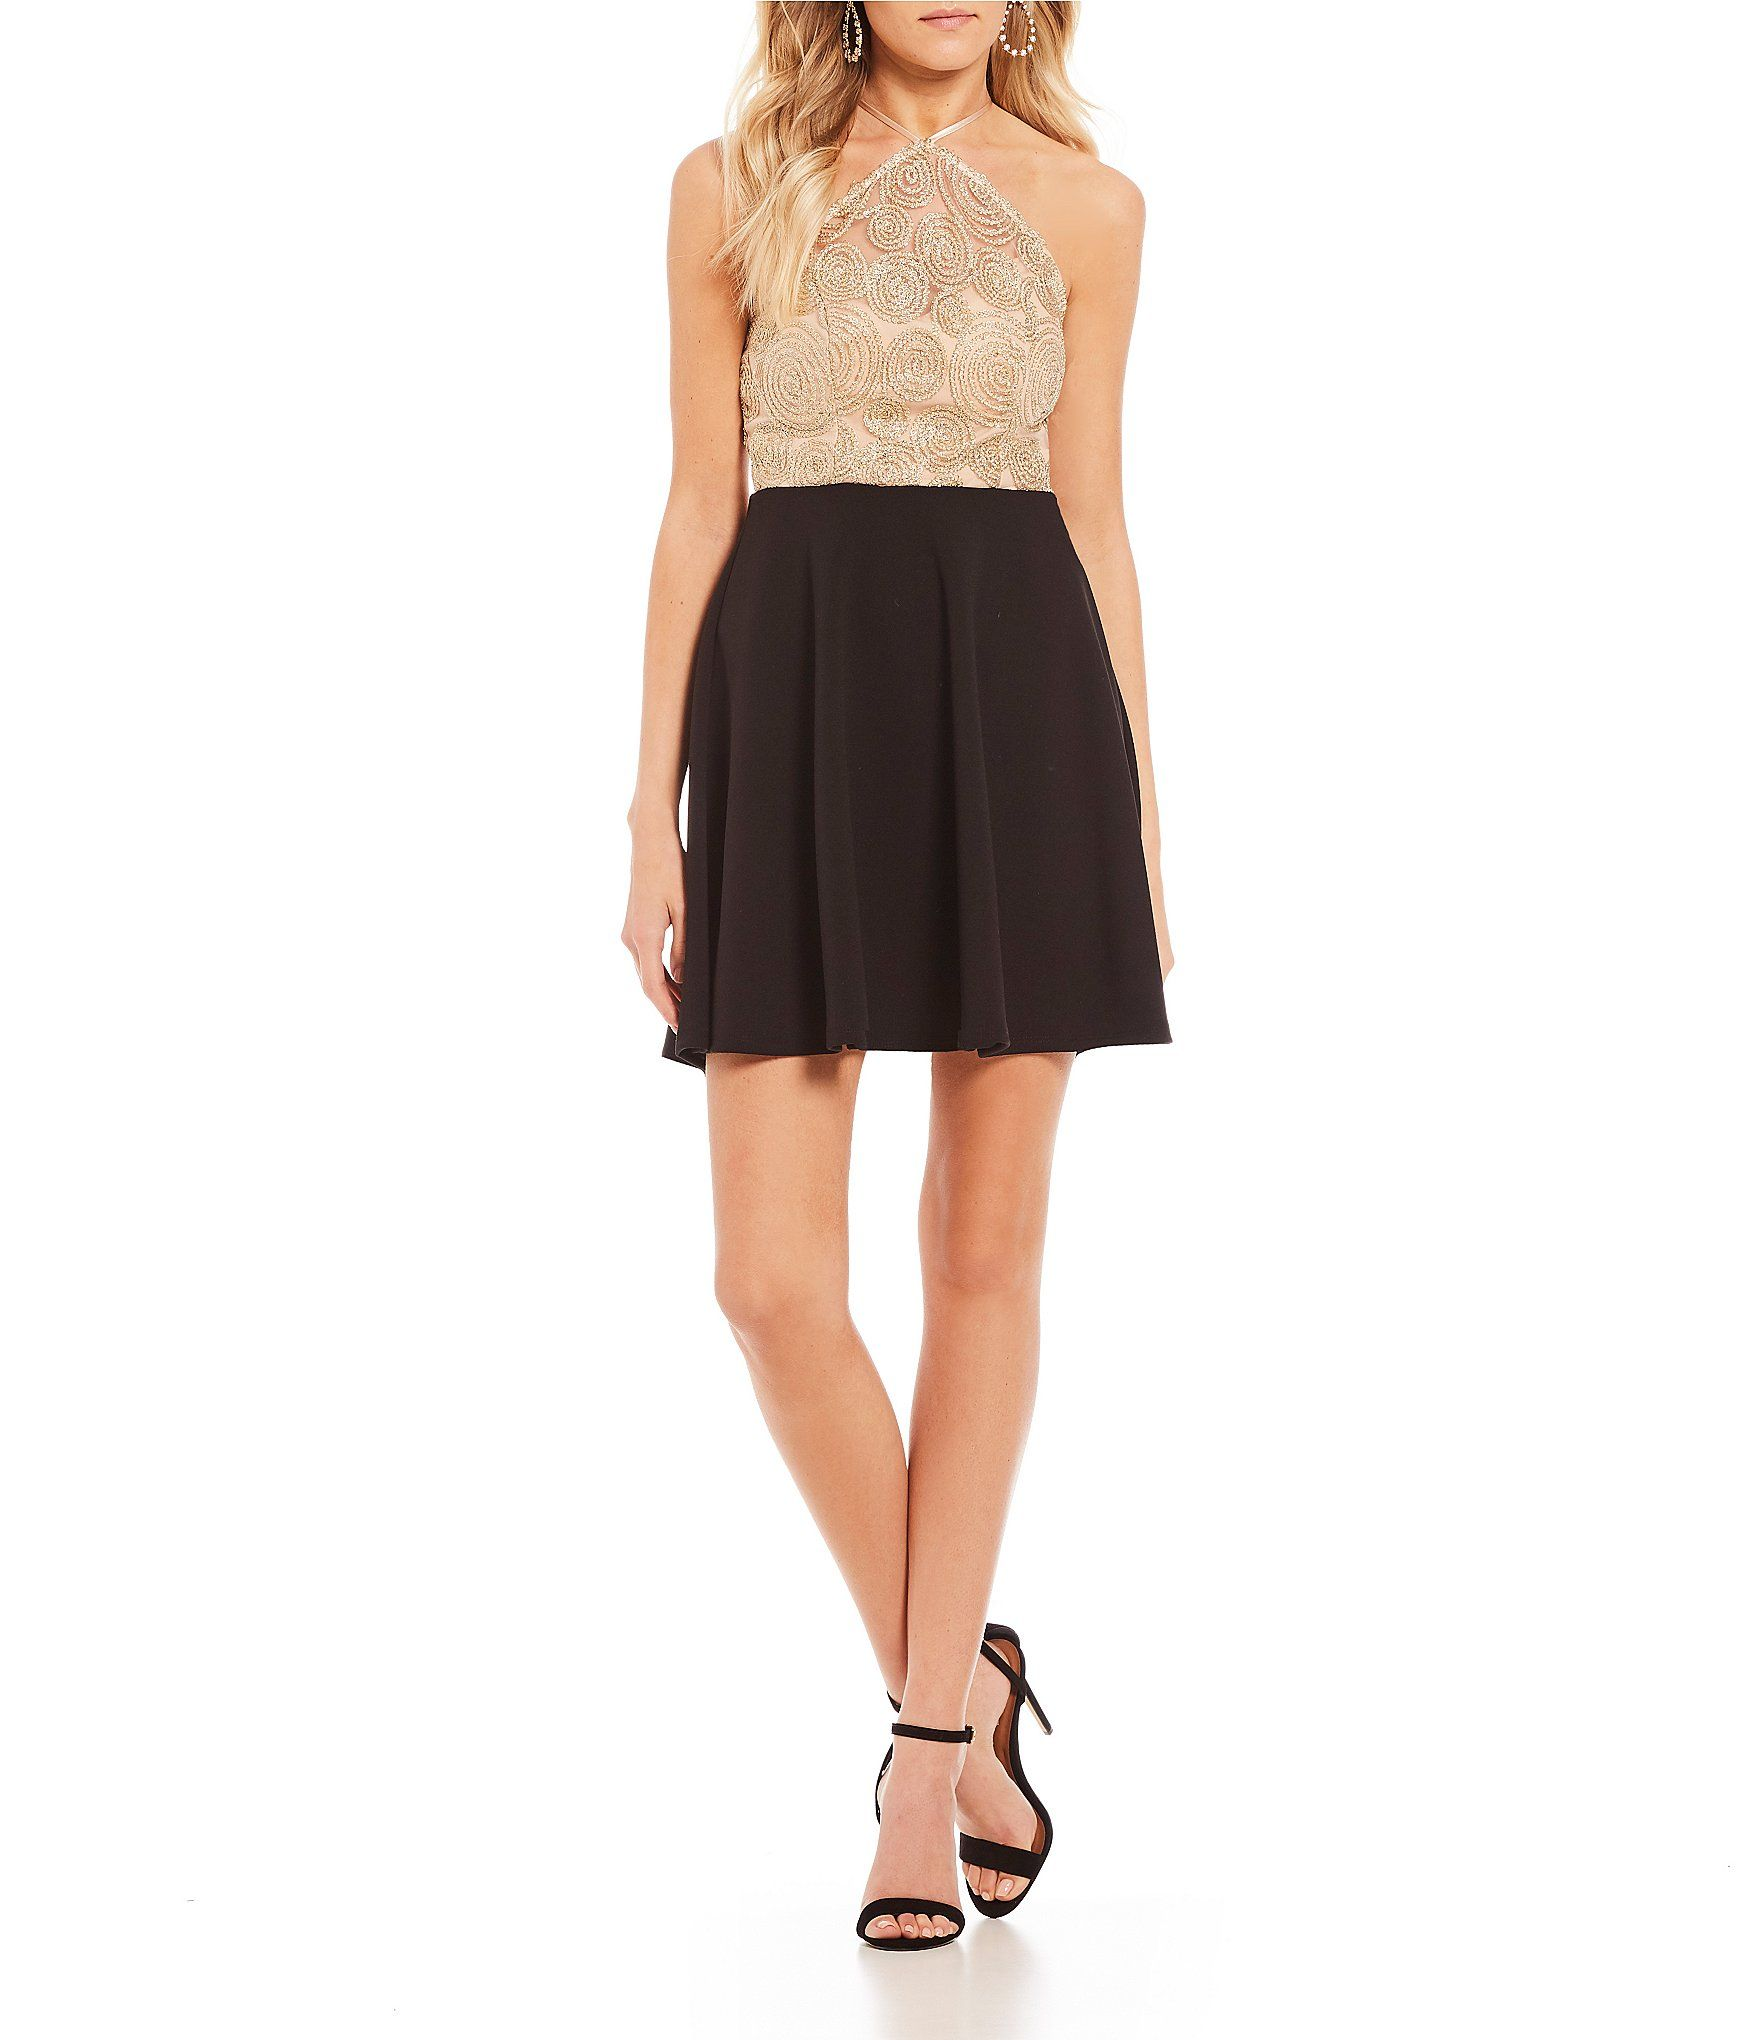 B darlin chain lace fitandflare dress dillards dresses in